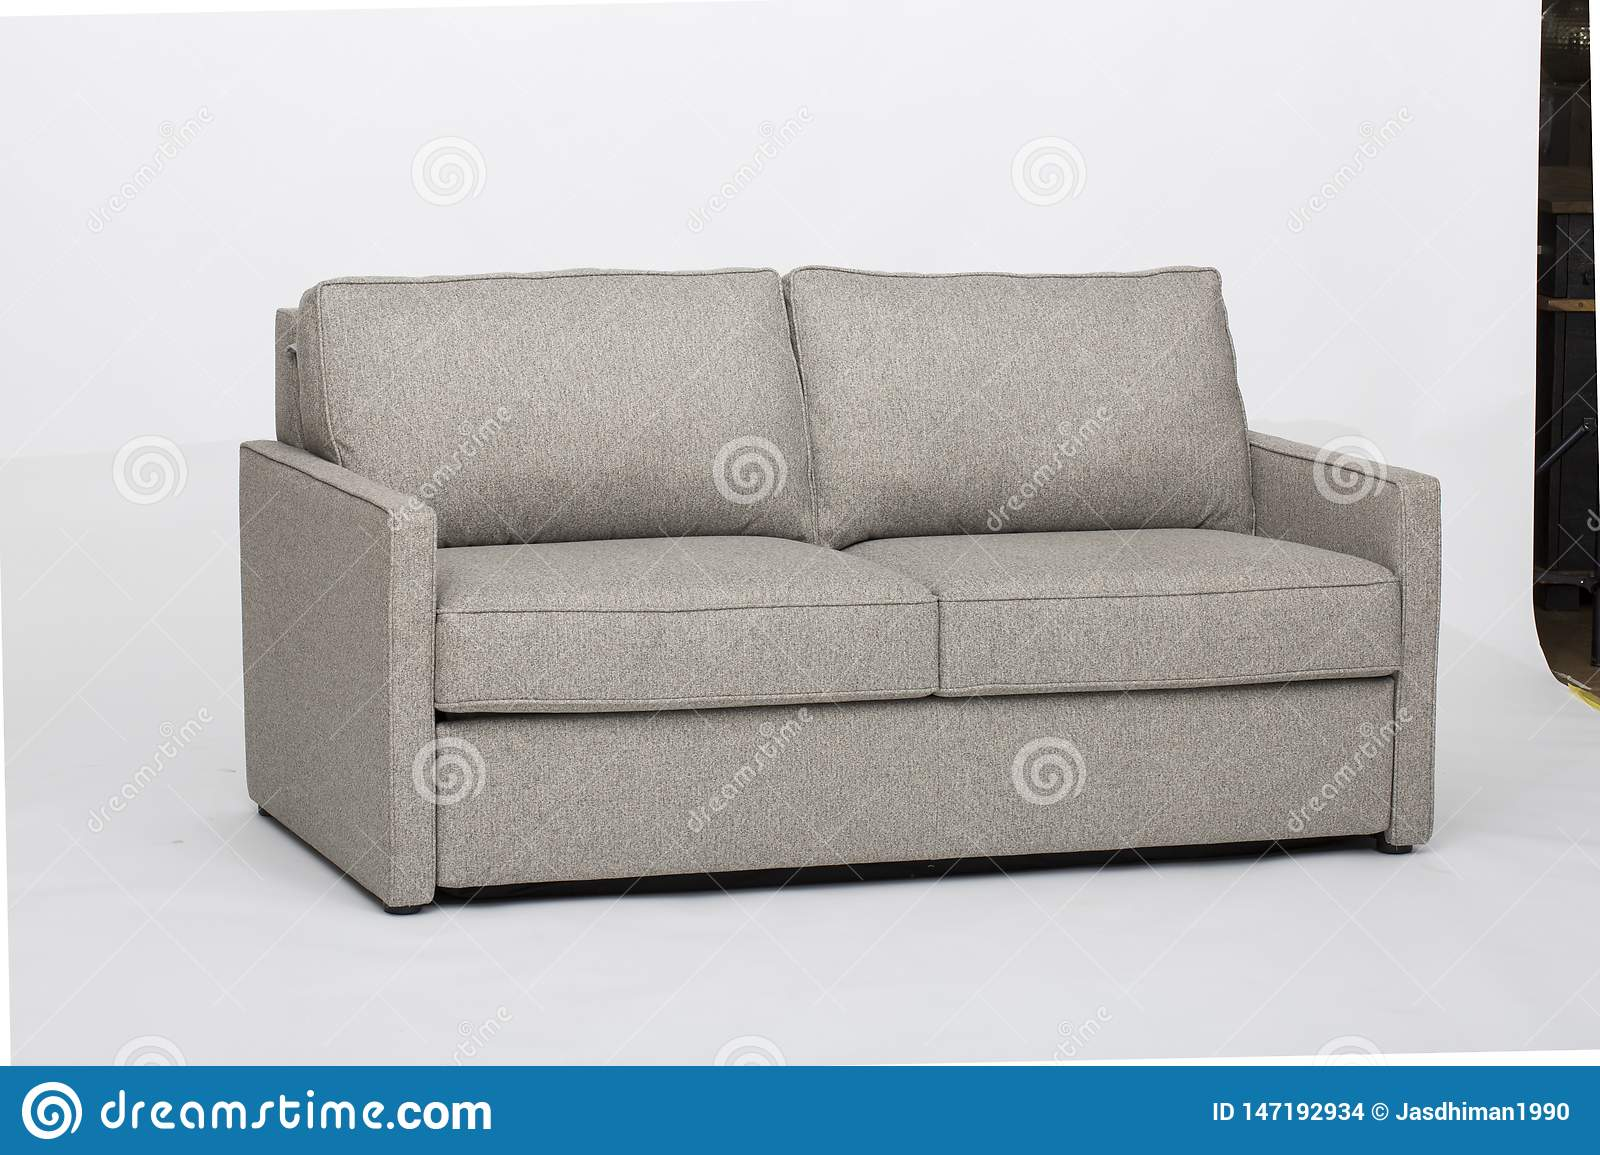 Southern Furniture Bradley Sofa, Full Size Of Chair ...